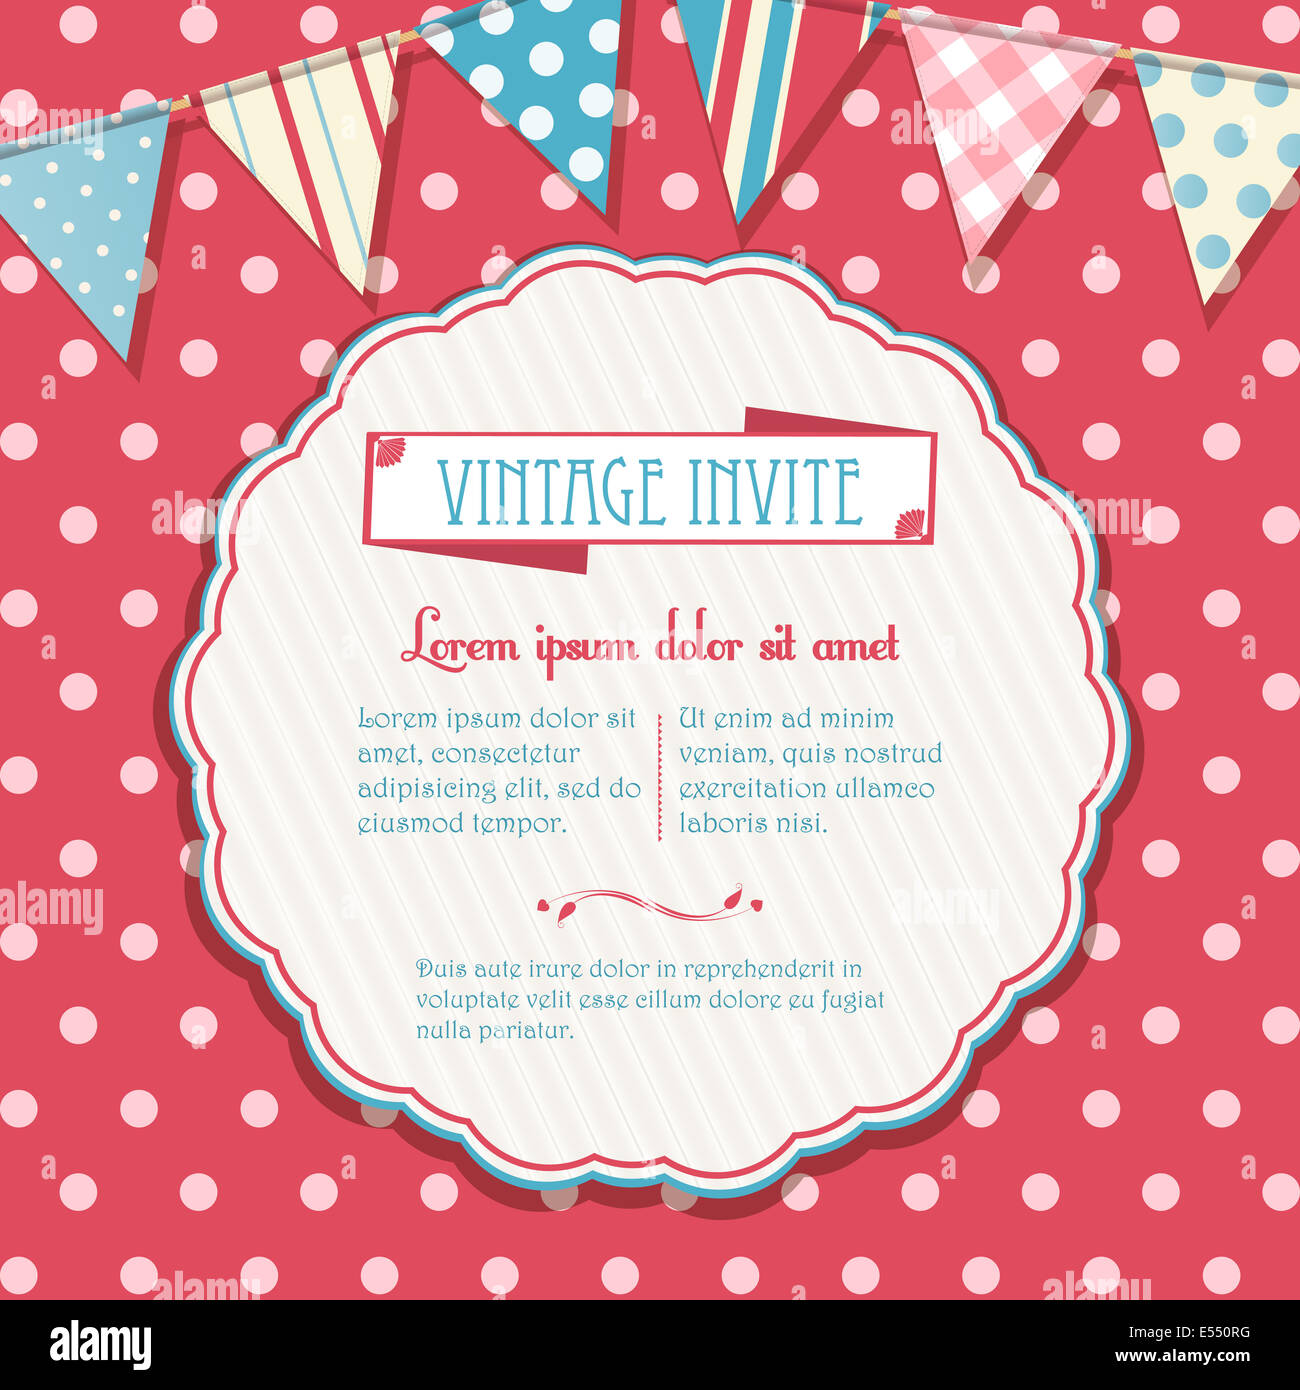 Circular Invite Vector on a Pink Polka Dot Background with Bunting - Stock Image